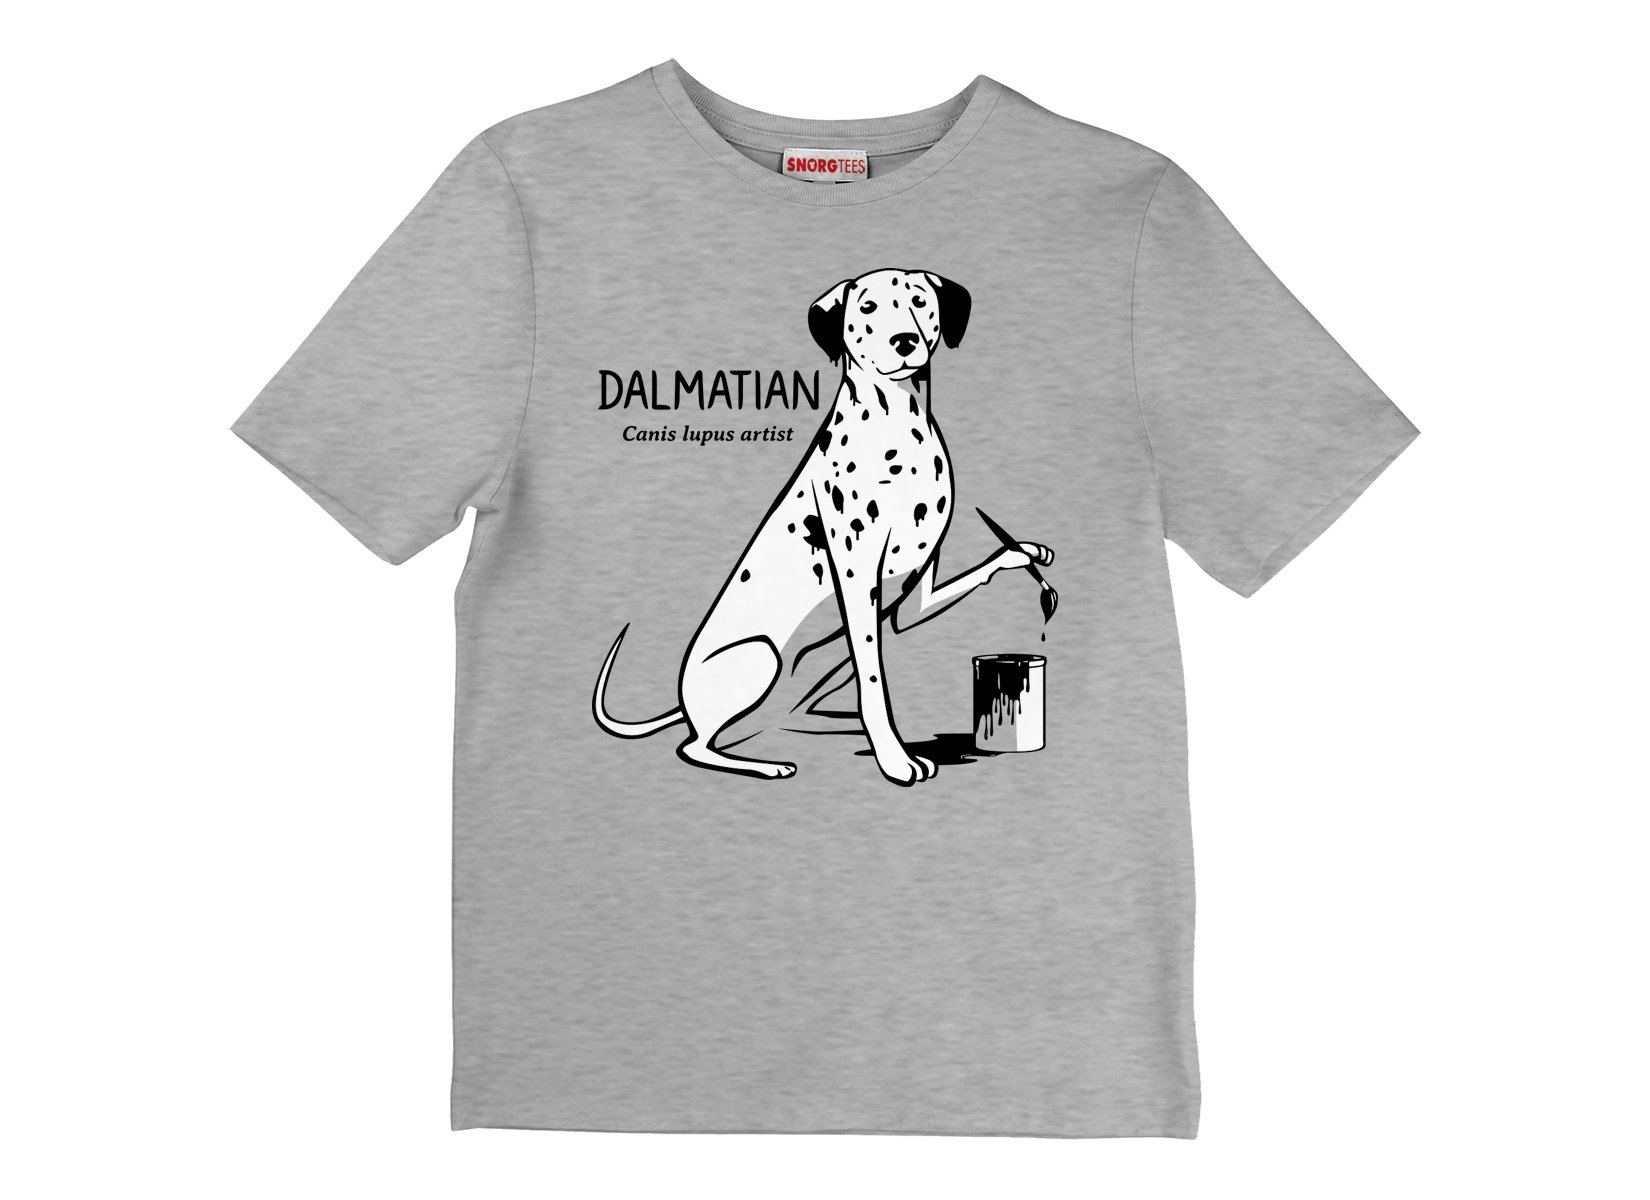 How Dalmatians Are Made on Kids T-Shirt